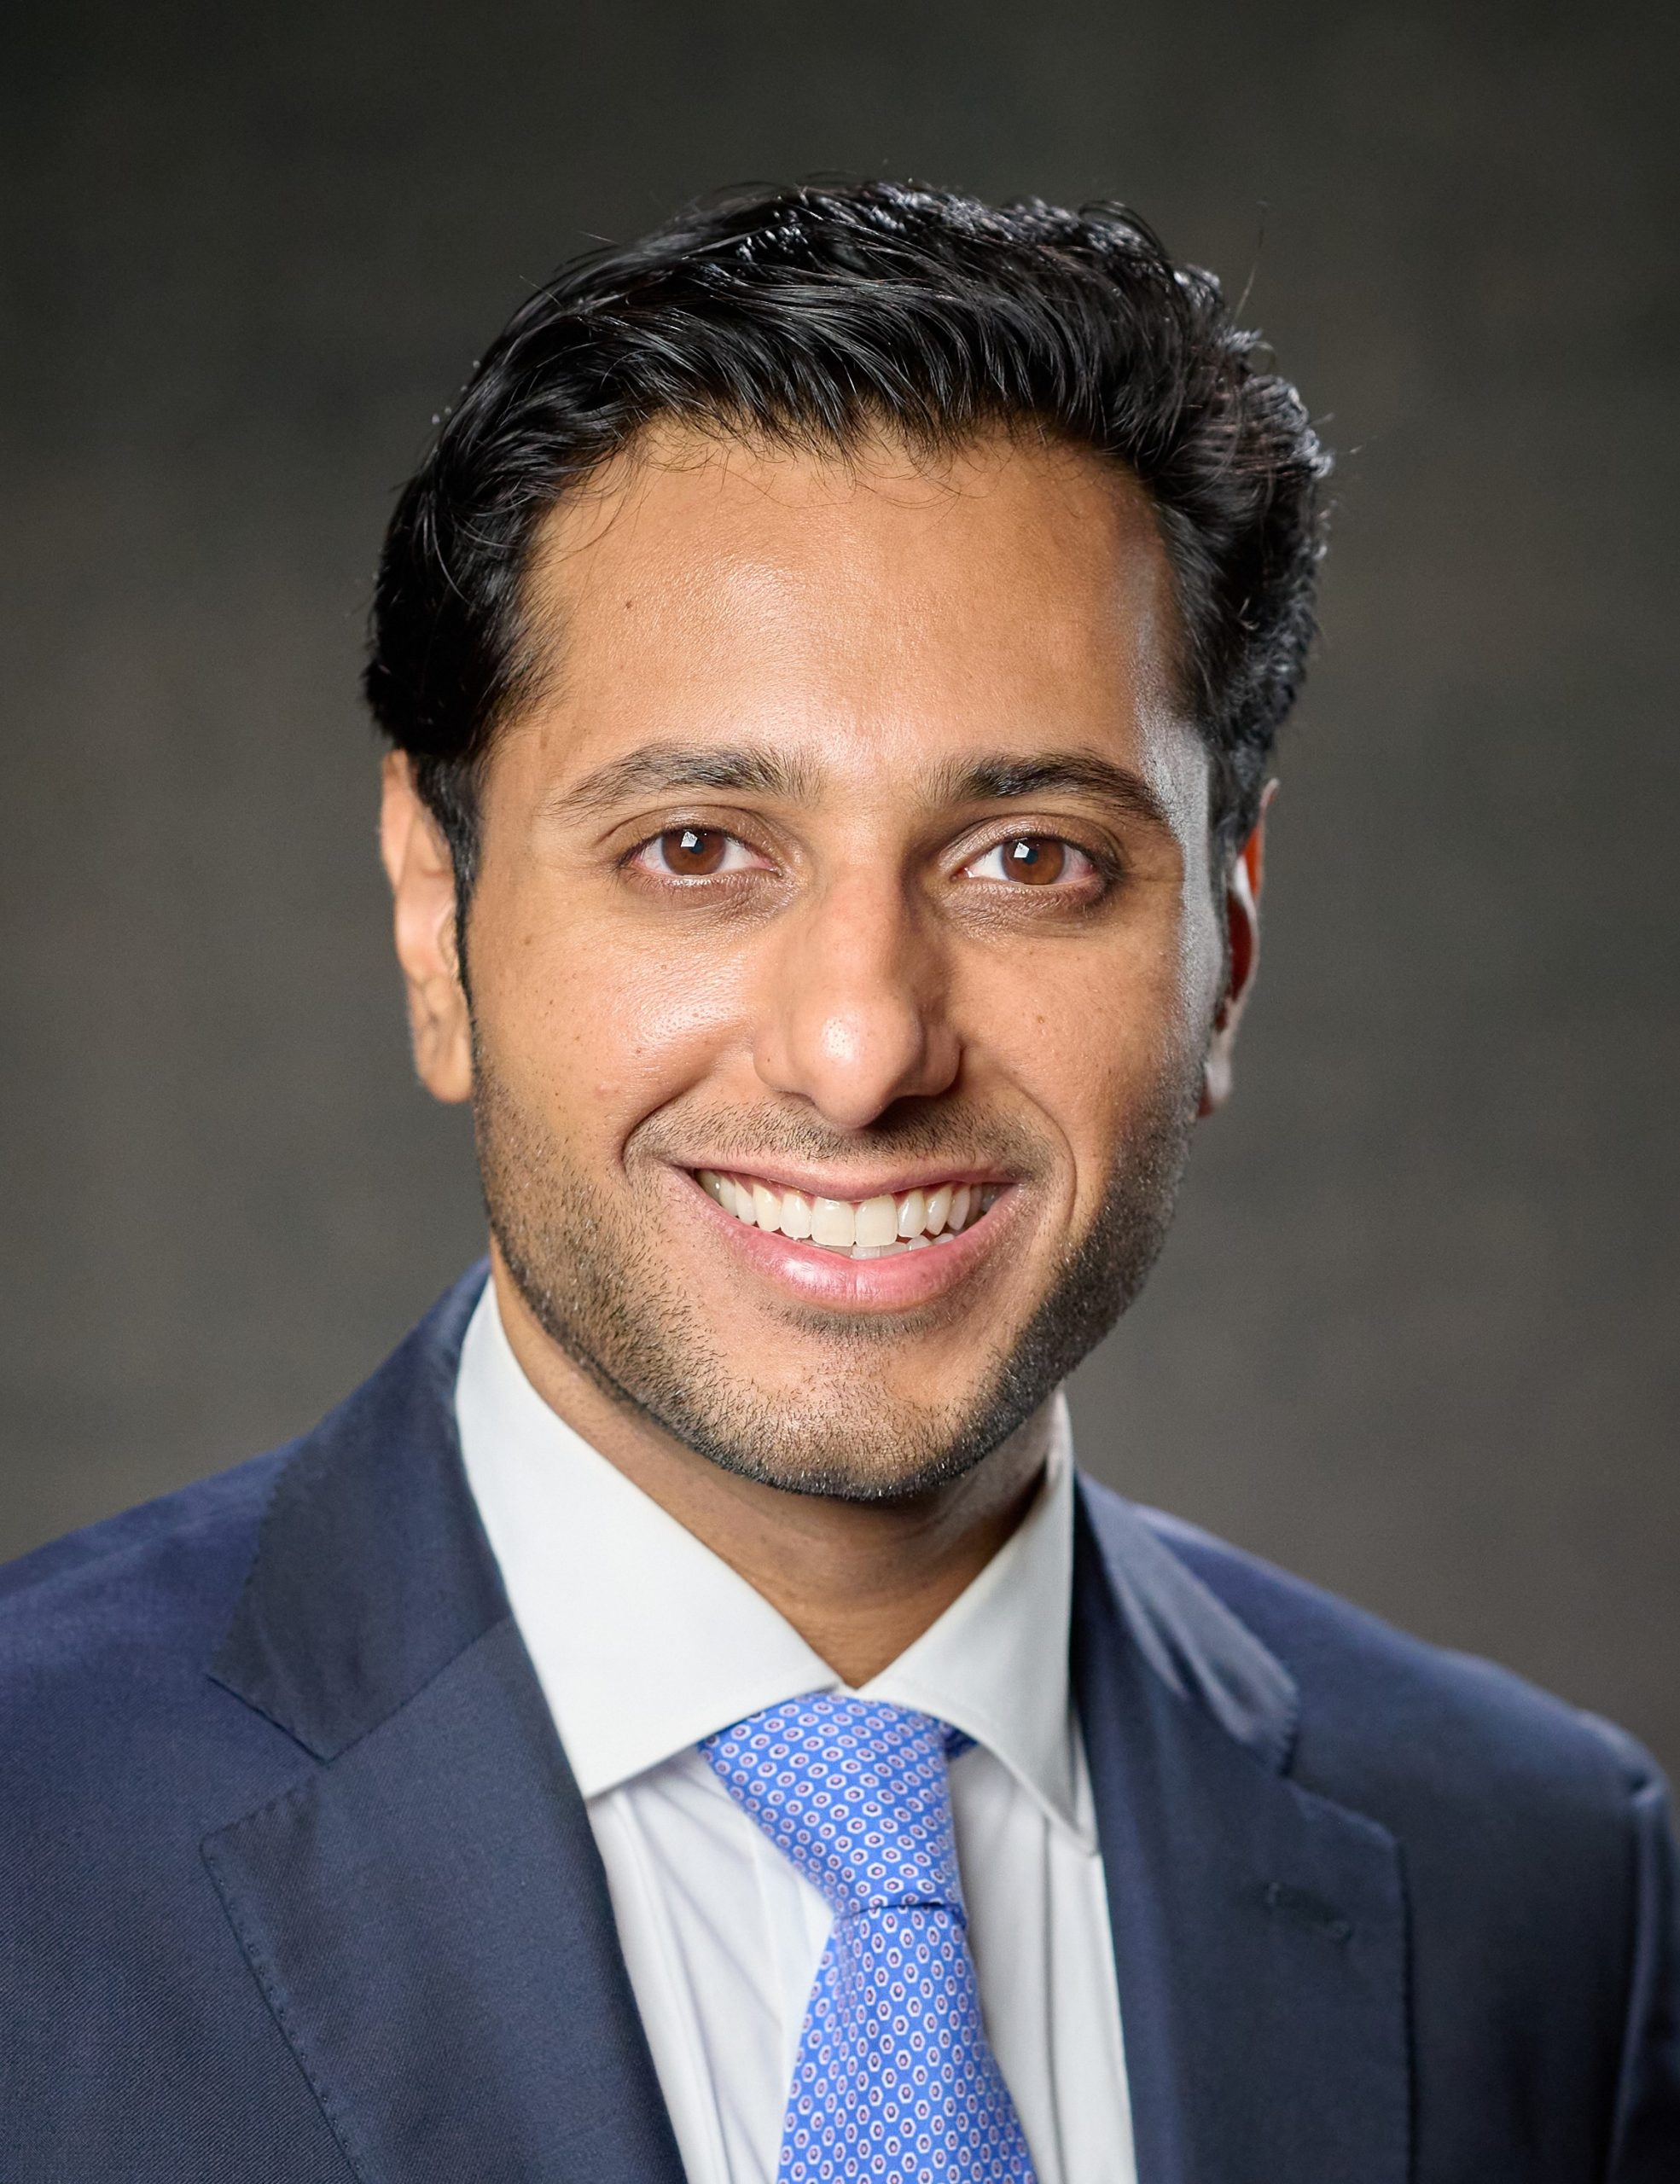 Wasim Nasir, MD - An Employed Provider of Memorial Healthcare